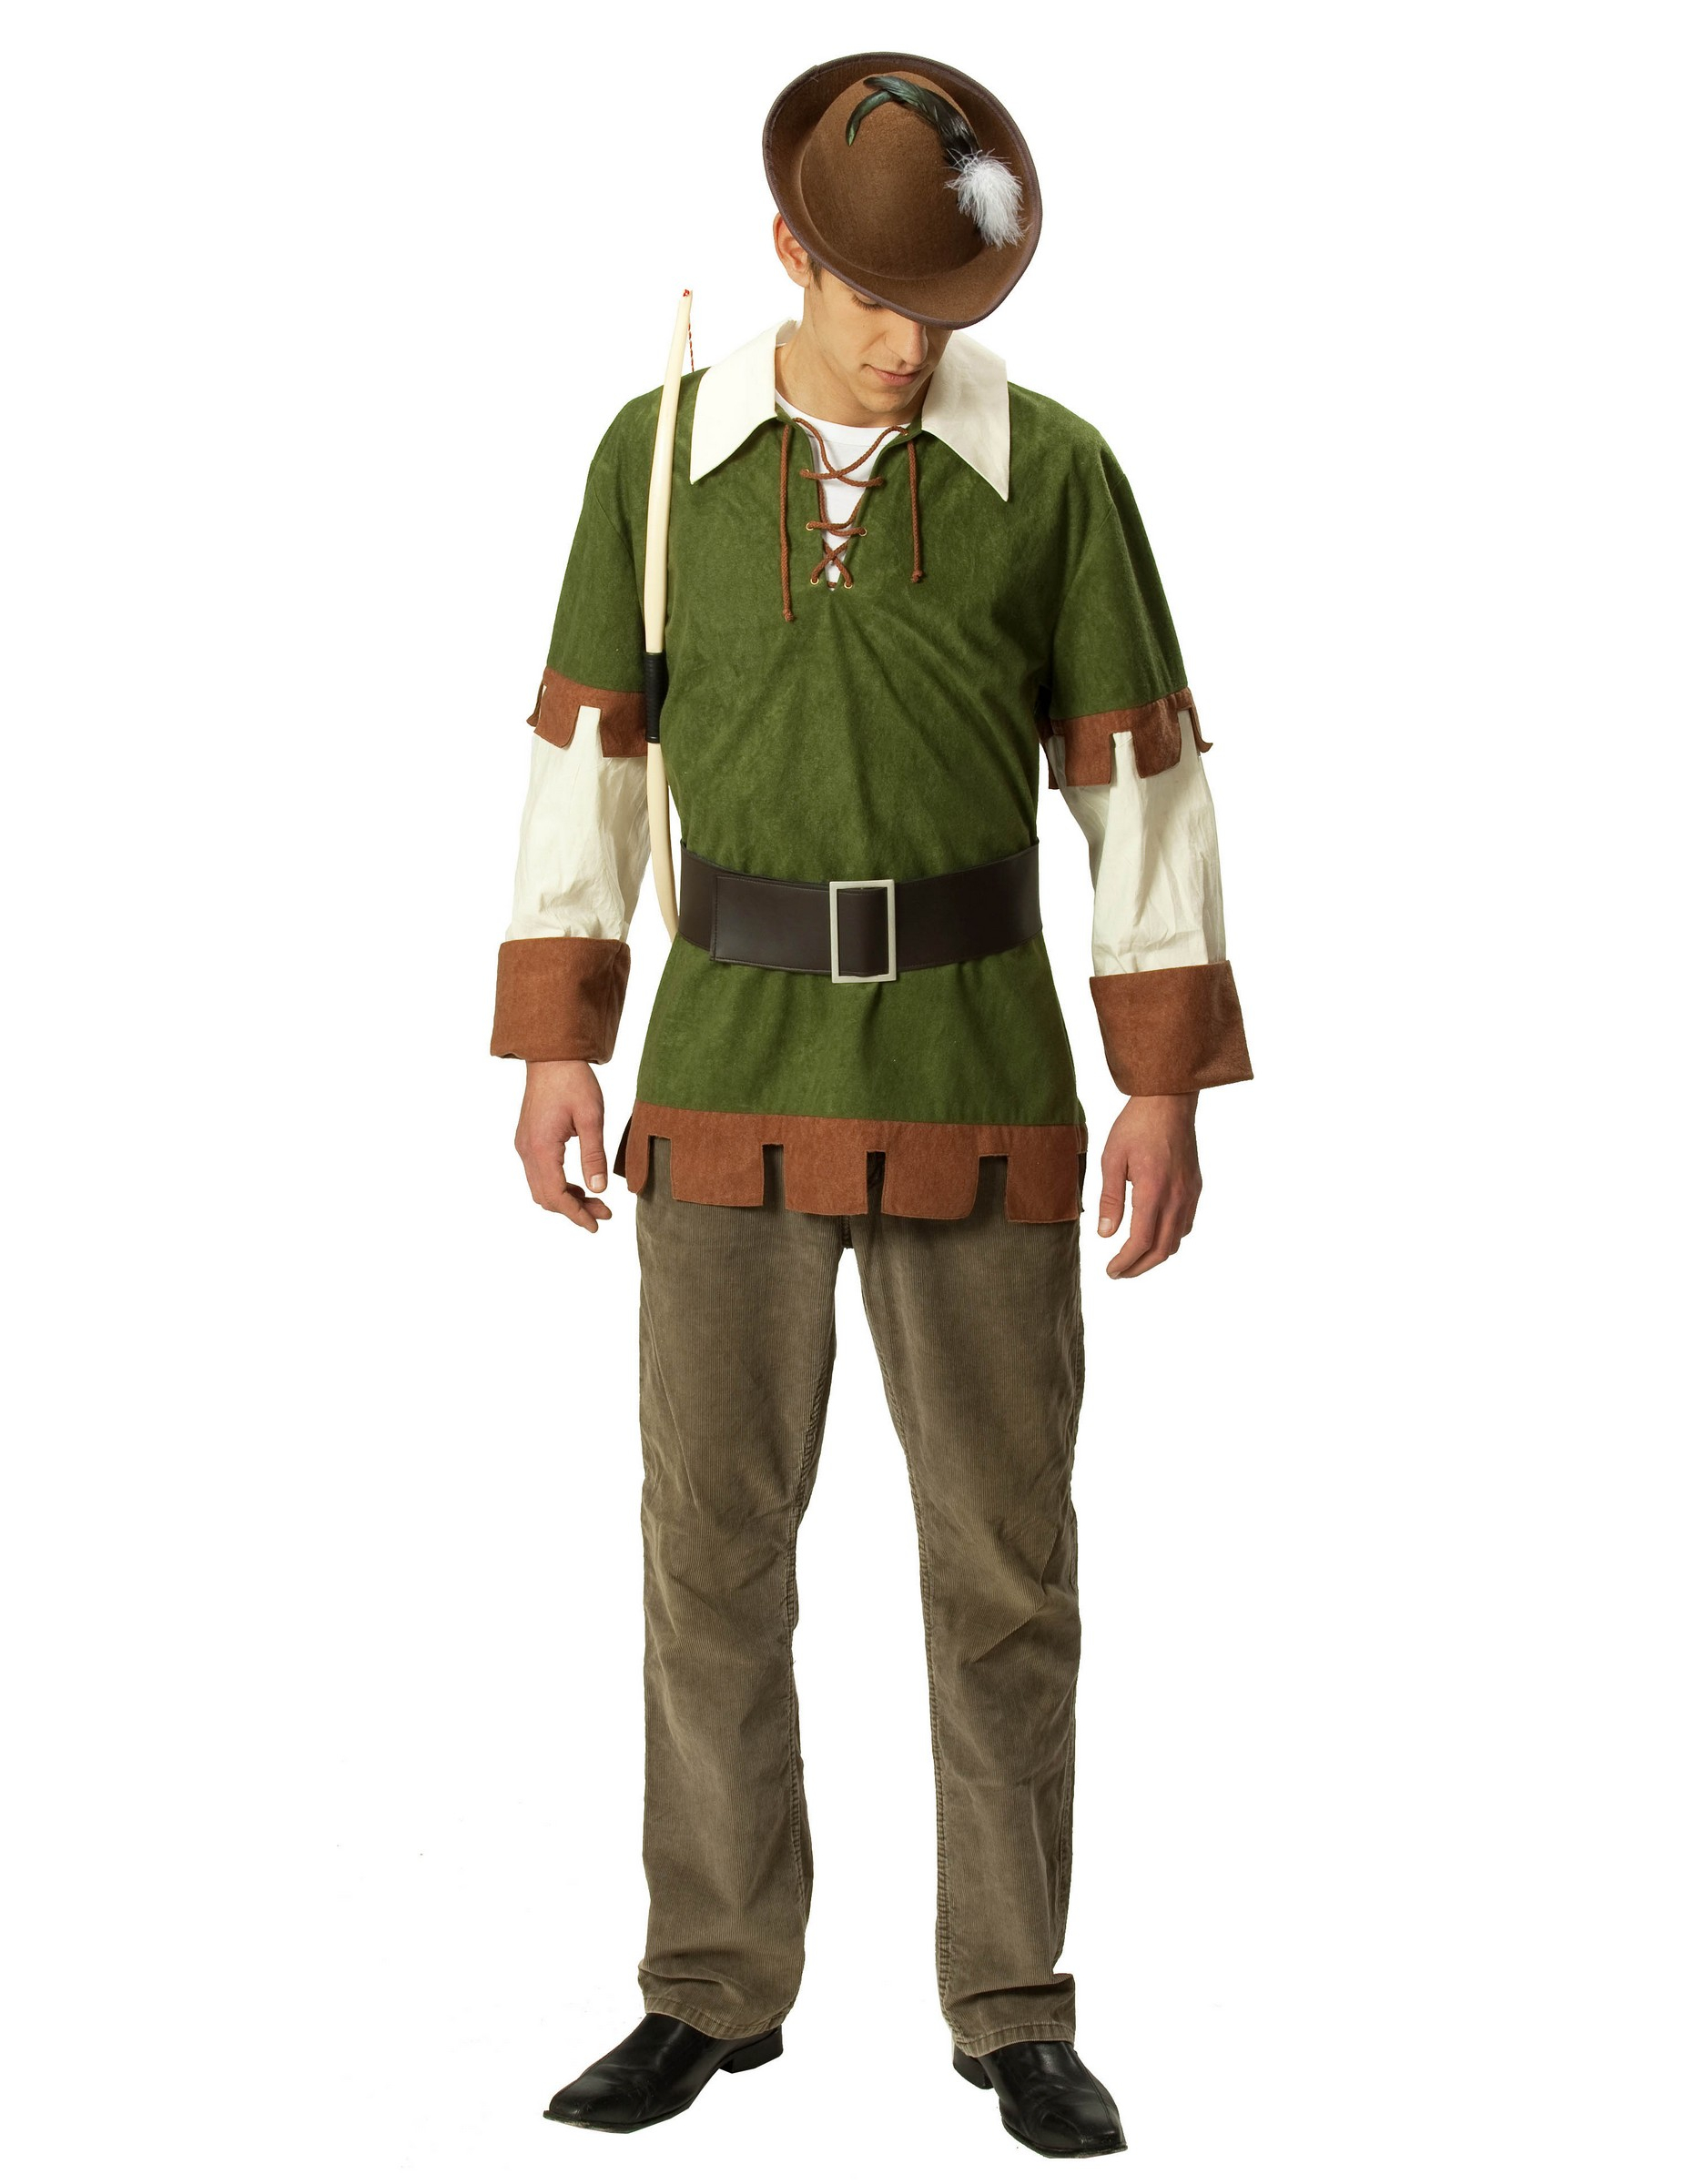 Robin Hood costume for adult